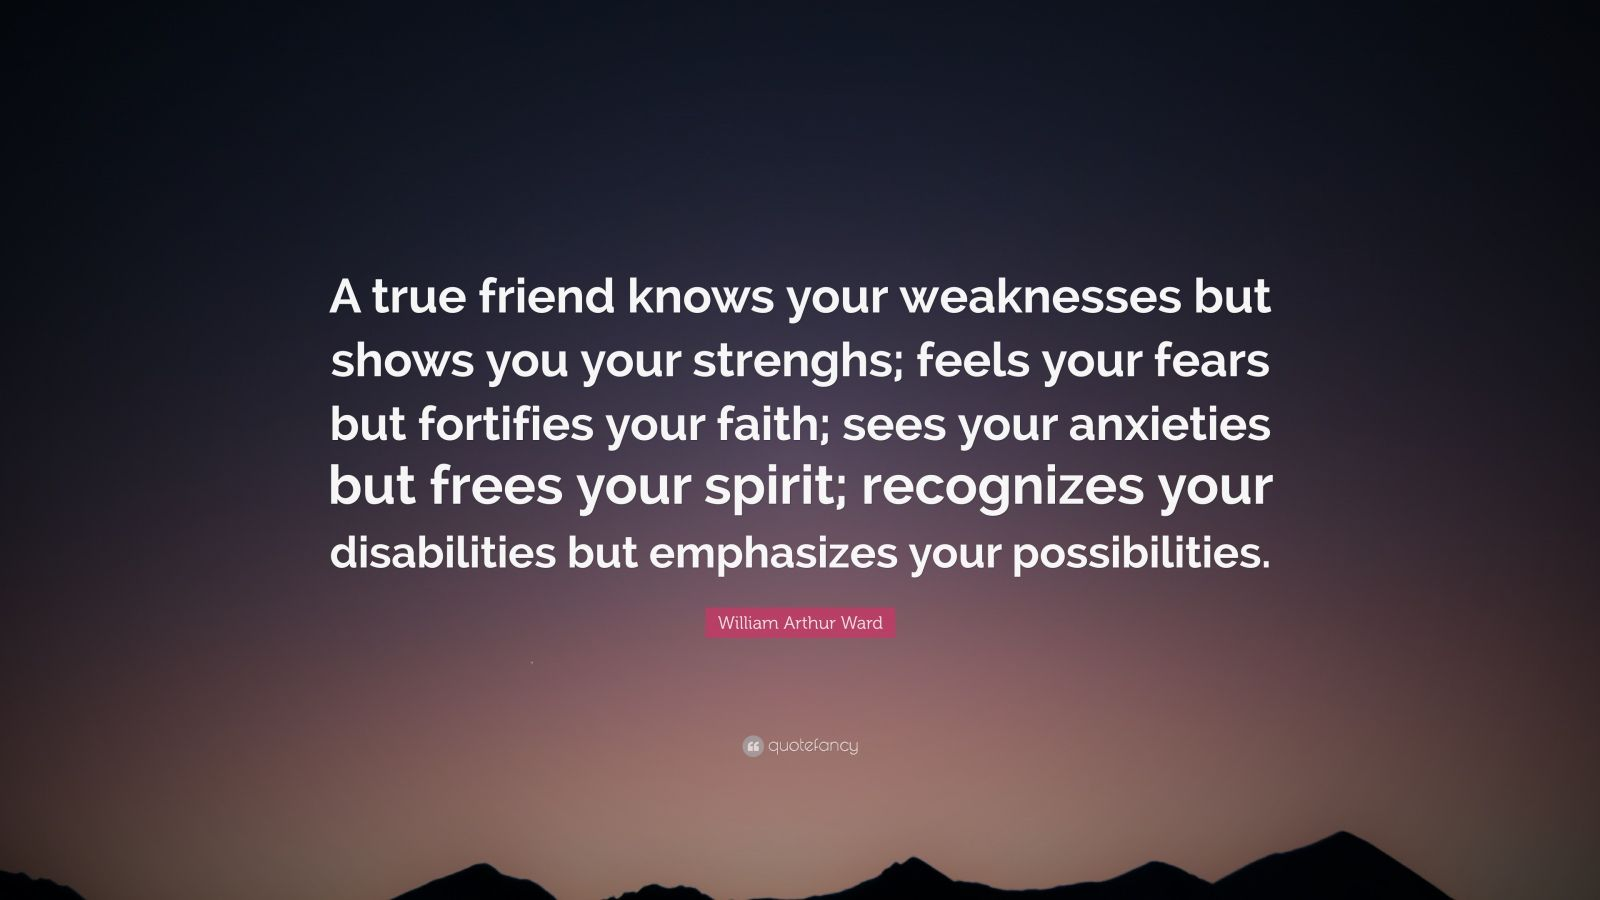 """William Arthur Ward Quote: """"A true friend knows your weaknesses but shows you your strenghs; feels your fears but fortifies your faith; sees your anxieties but frees your spirit; recognizes your disabilities but emphasizes your possibilities."""""""